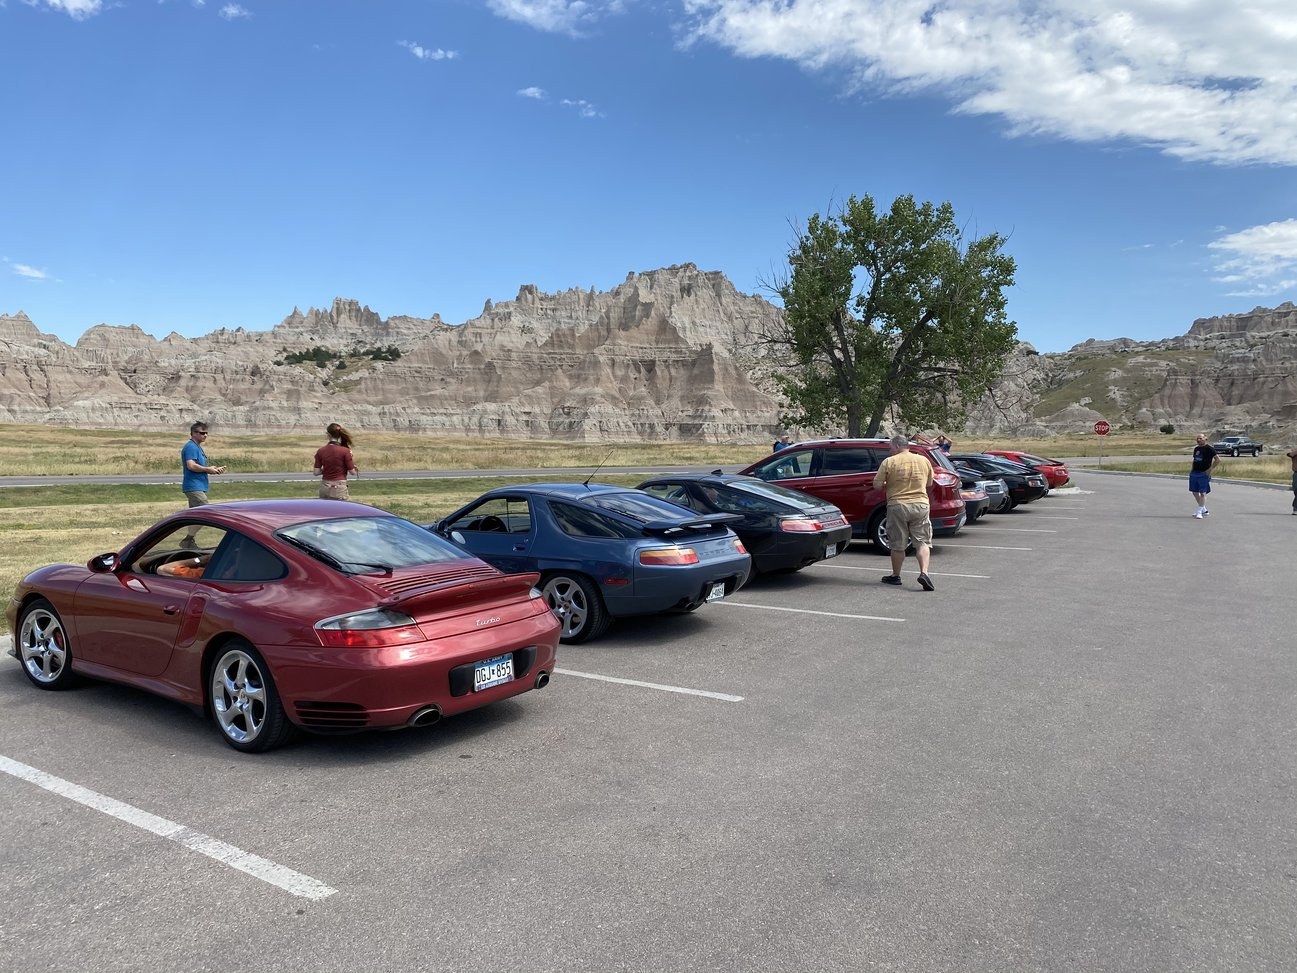 sharks in the badlands 928s event cars in the parking lot